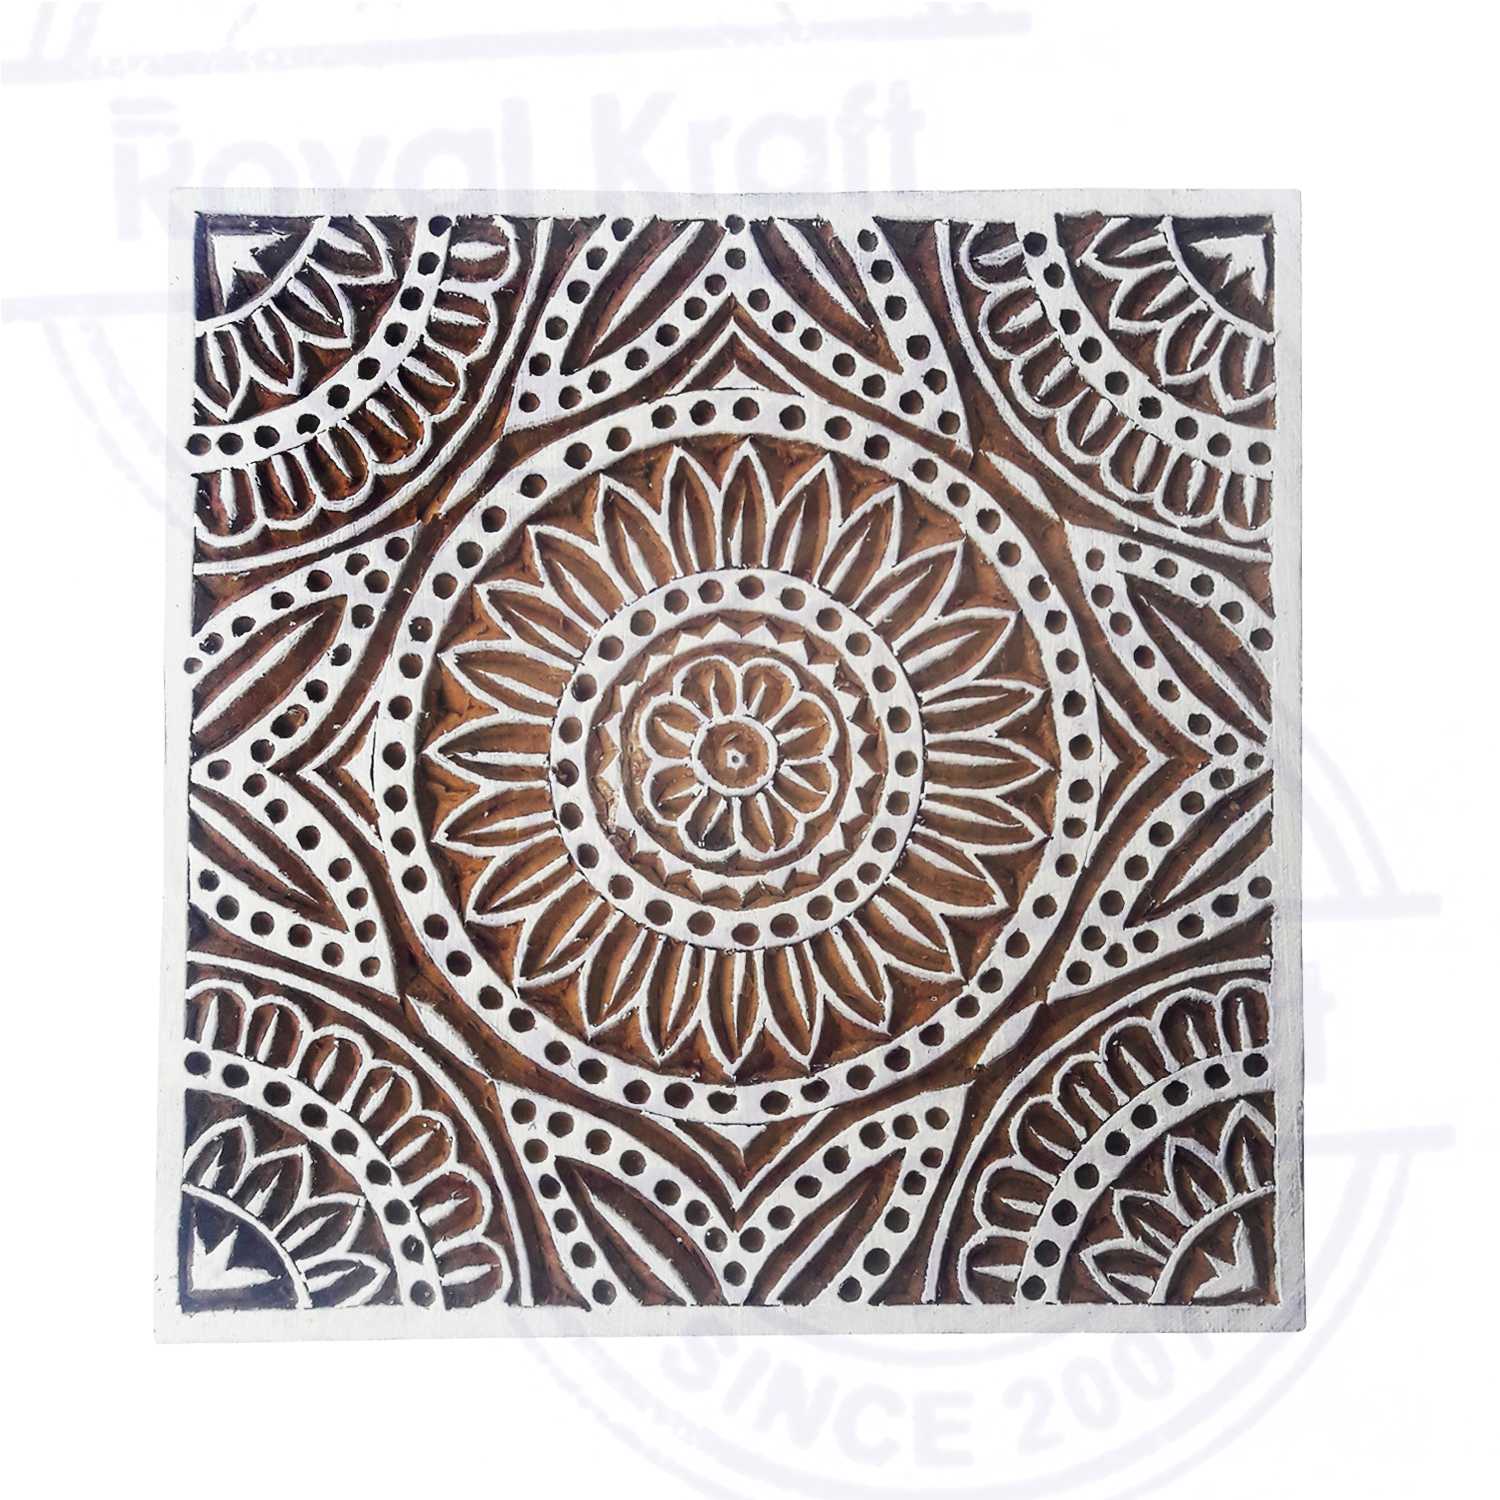 Large Square Printing Blocks 5 inches